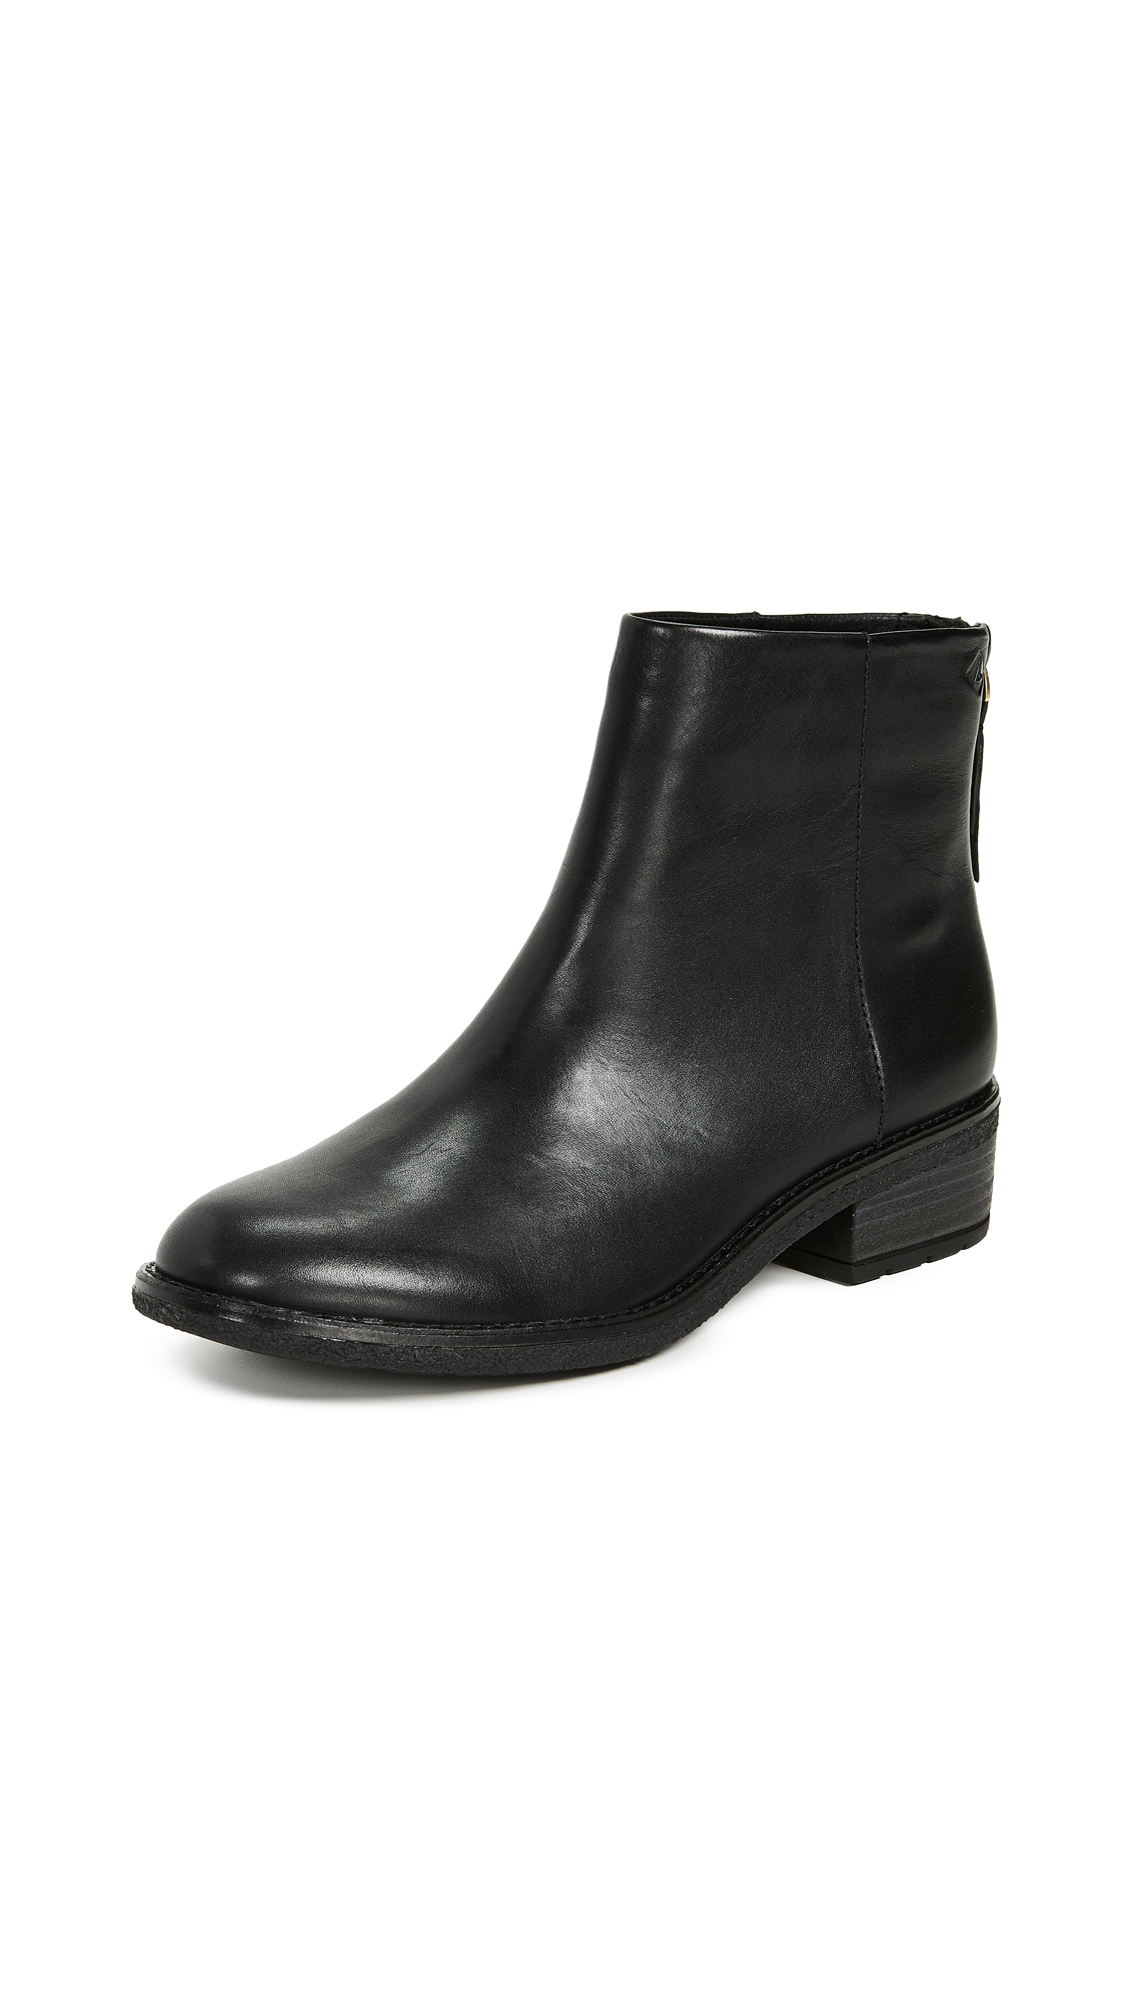 Sperry Maya Belle Boots - Black